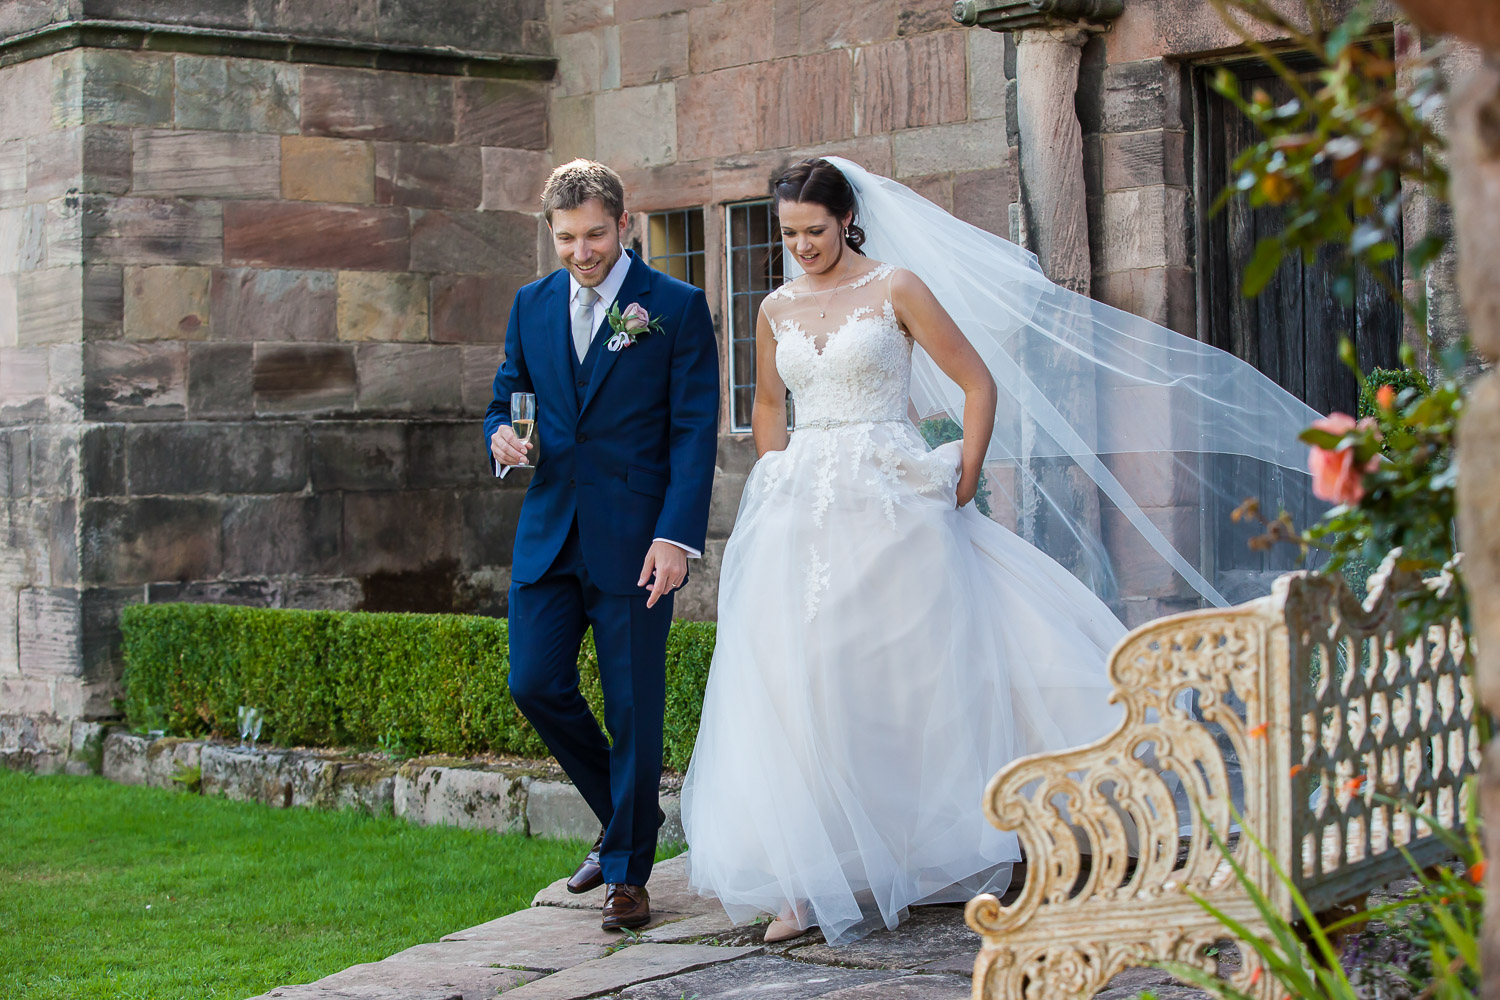 Natural Wedding Photography-Bride& Groom-The Ashes Wedding Venue